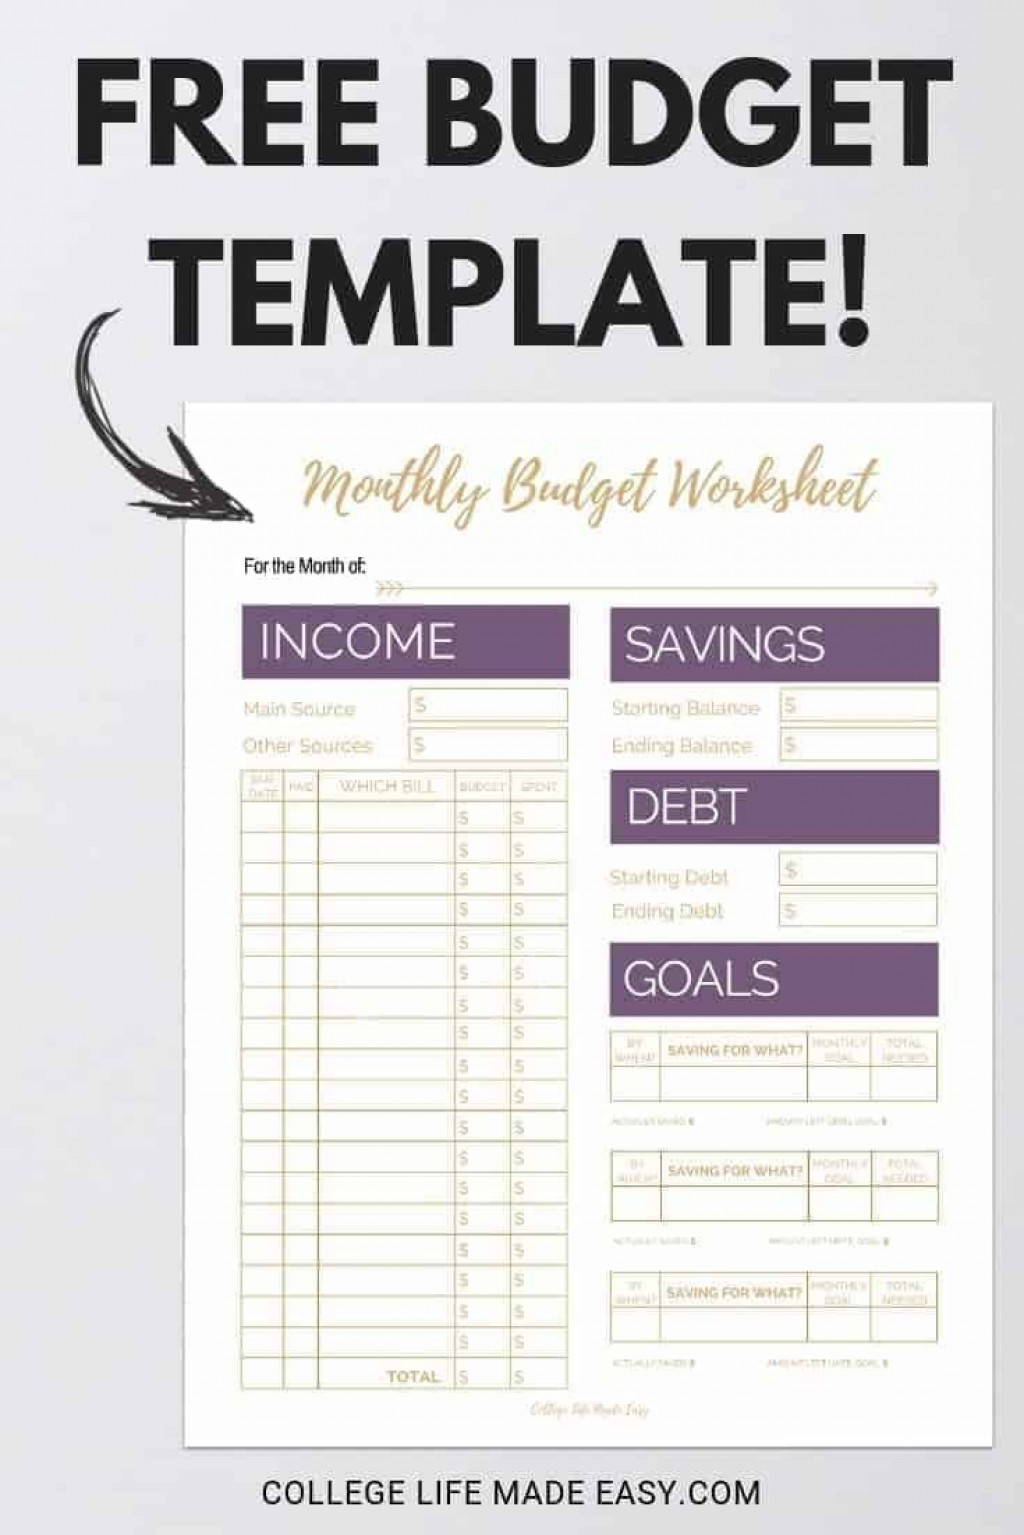 004 Archaicawful Free Printable Home Budget Template Photo  FormLarge